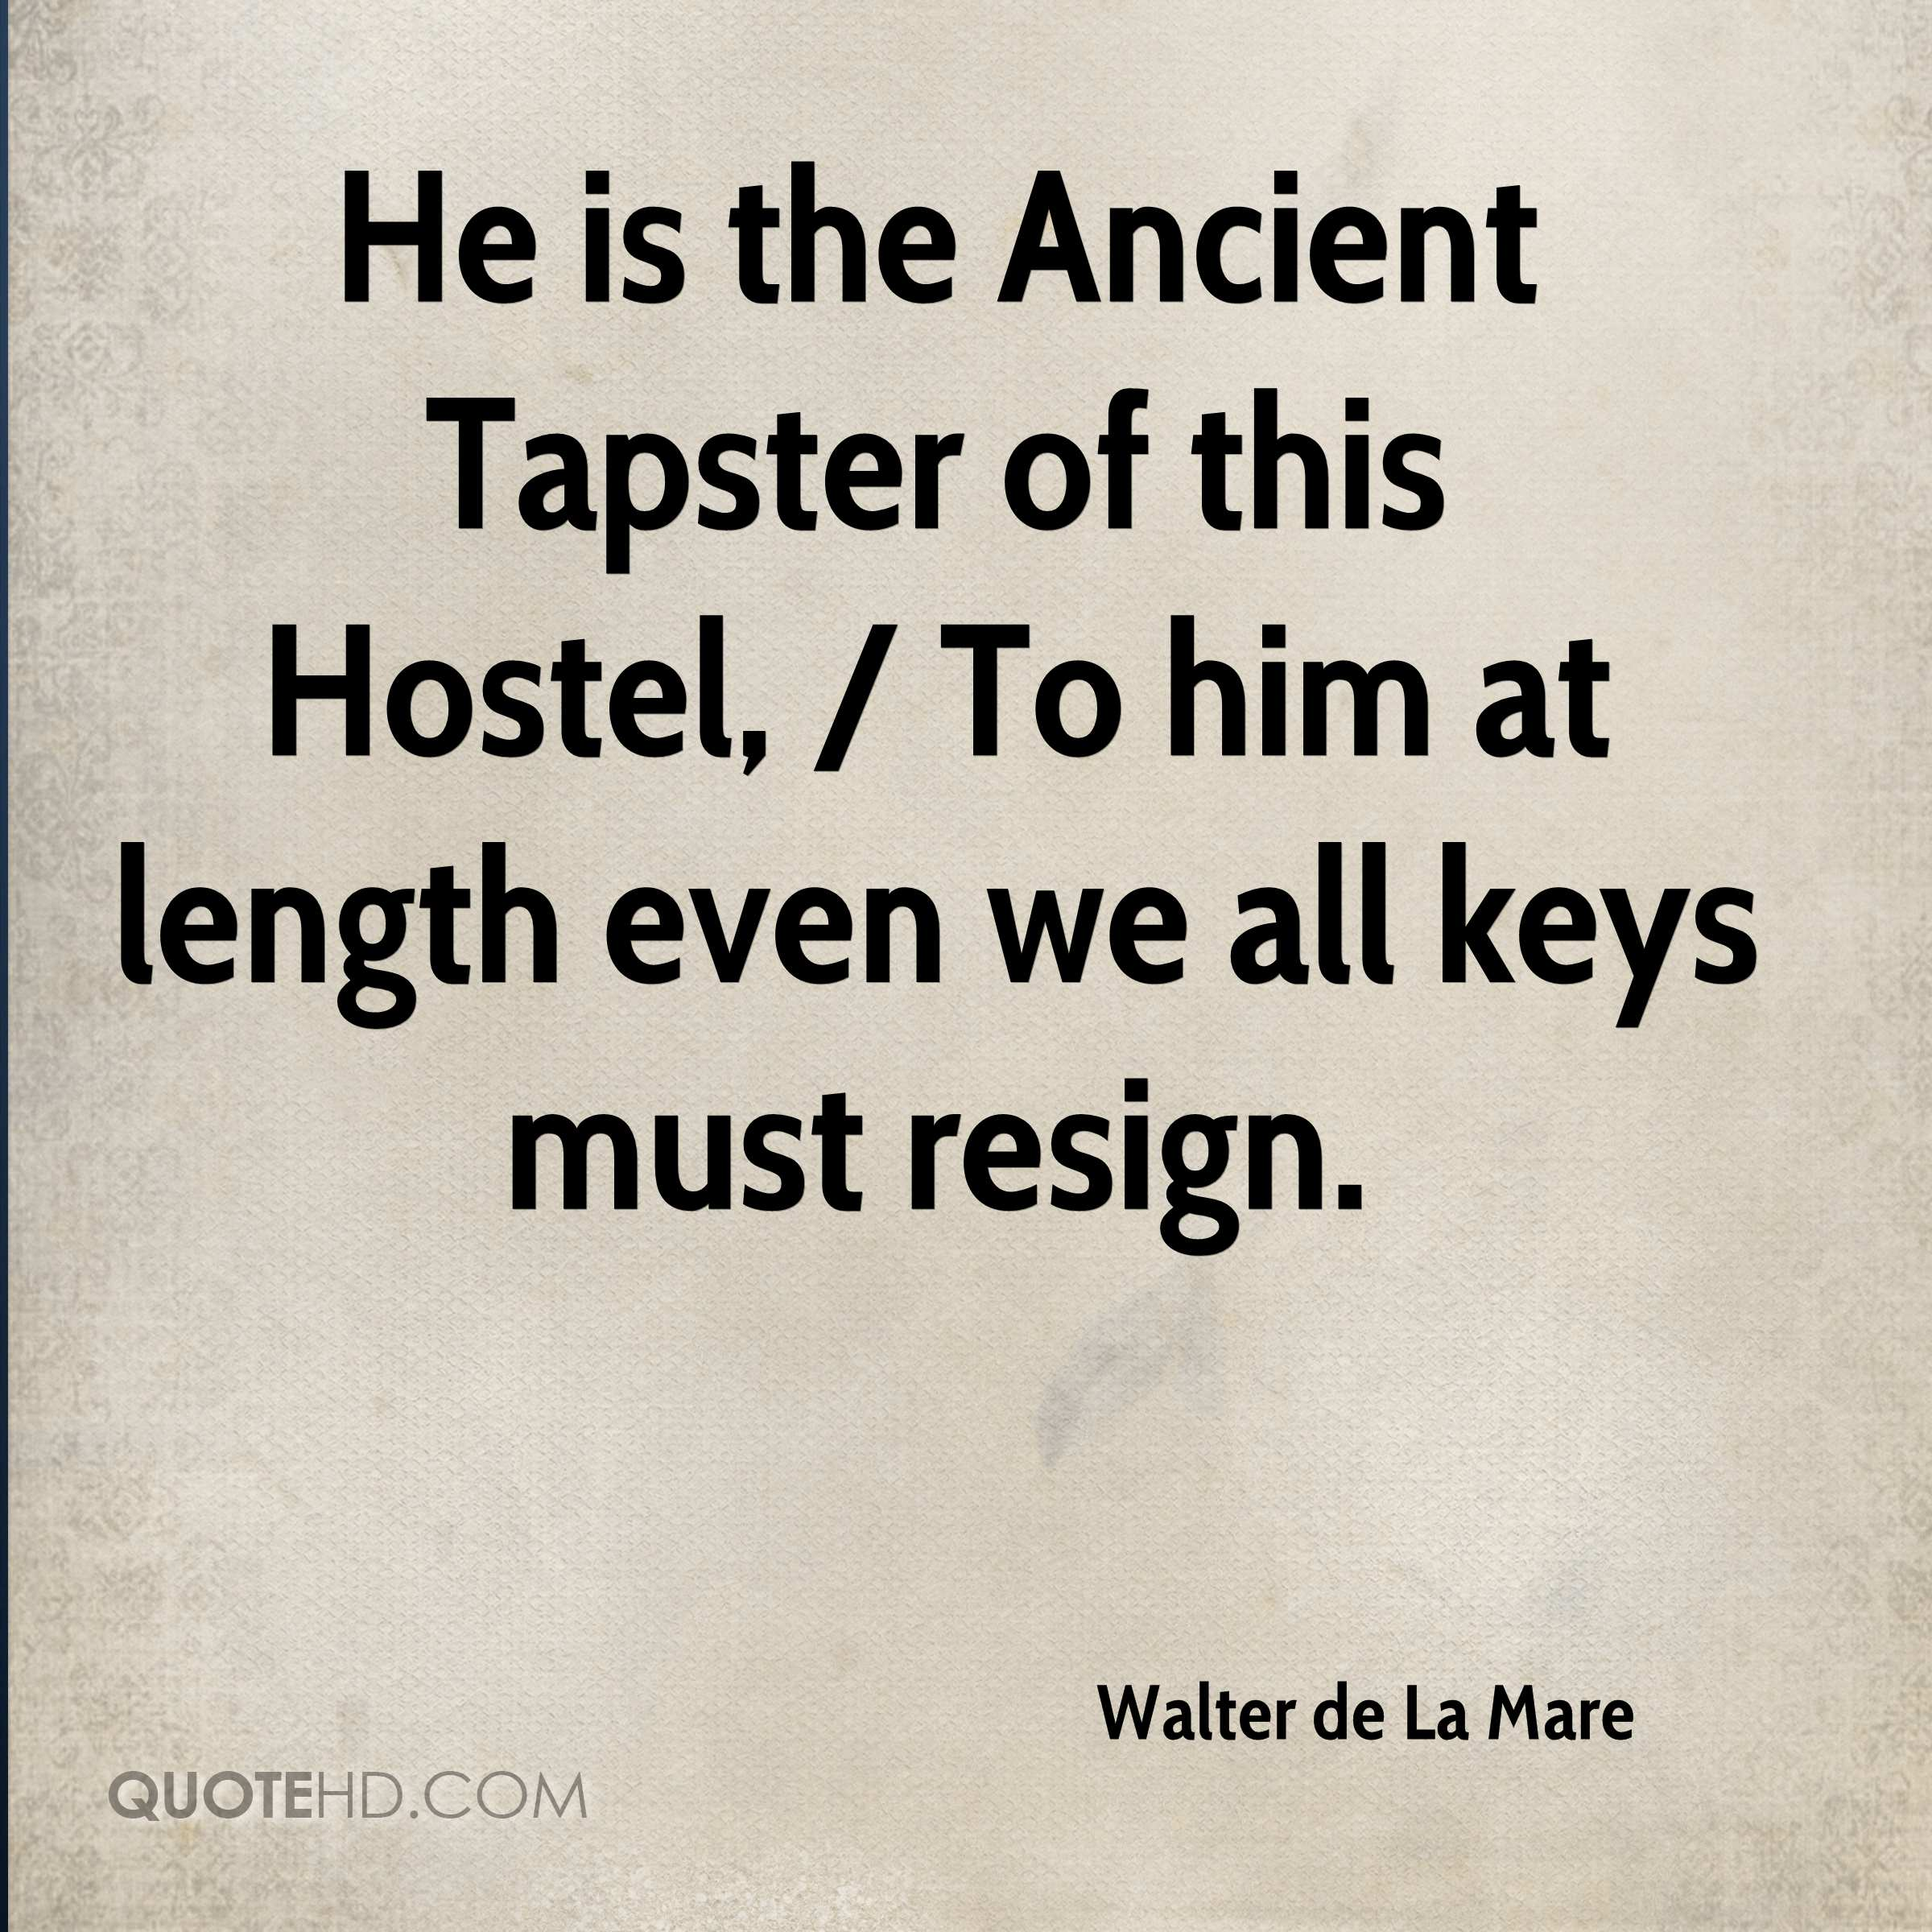 He is the Ancient Tapster of this Hostel, / To him at length even we all keys must resign.